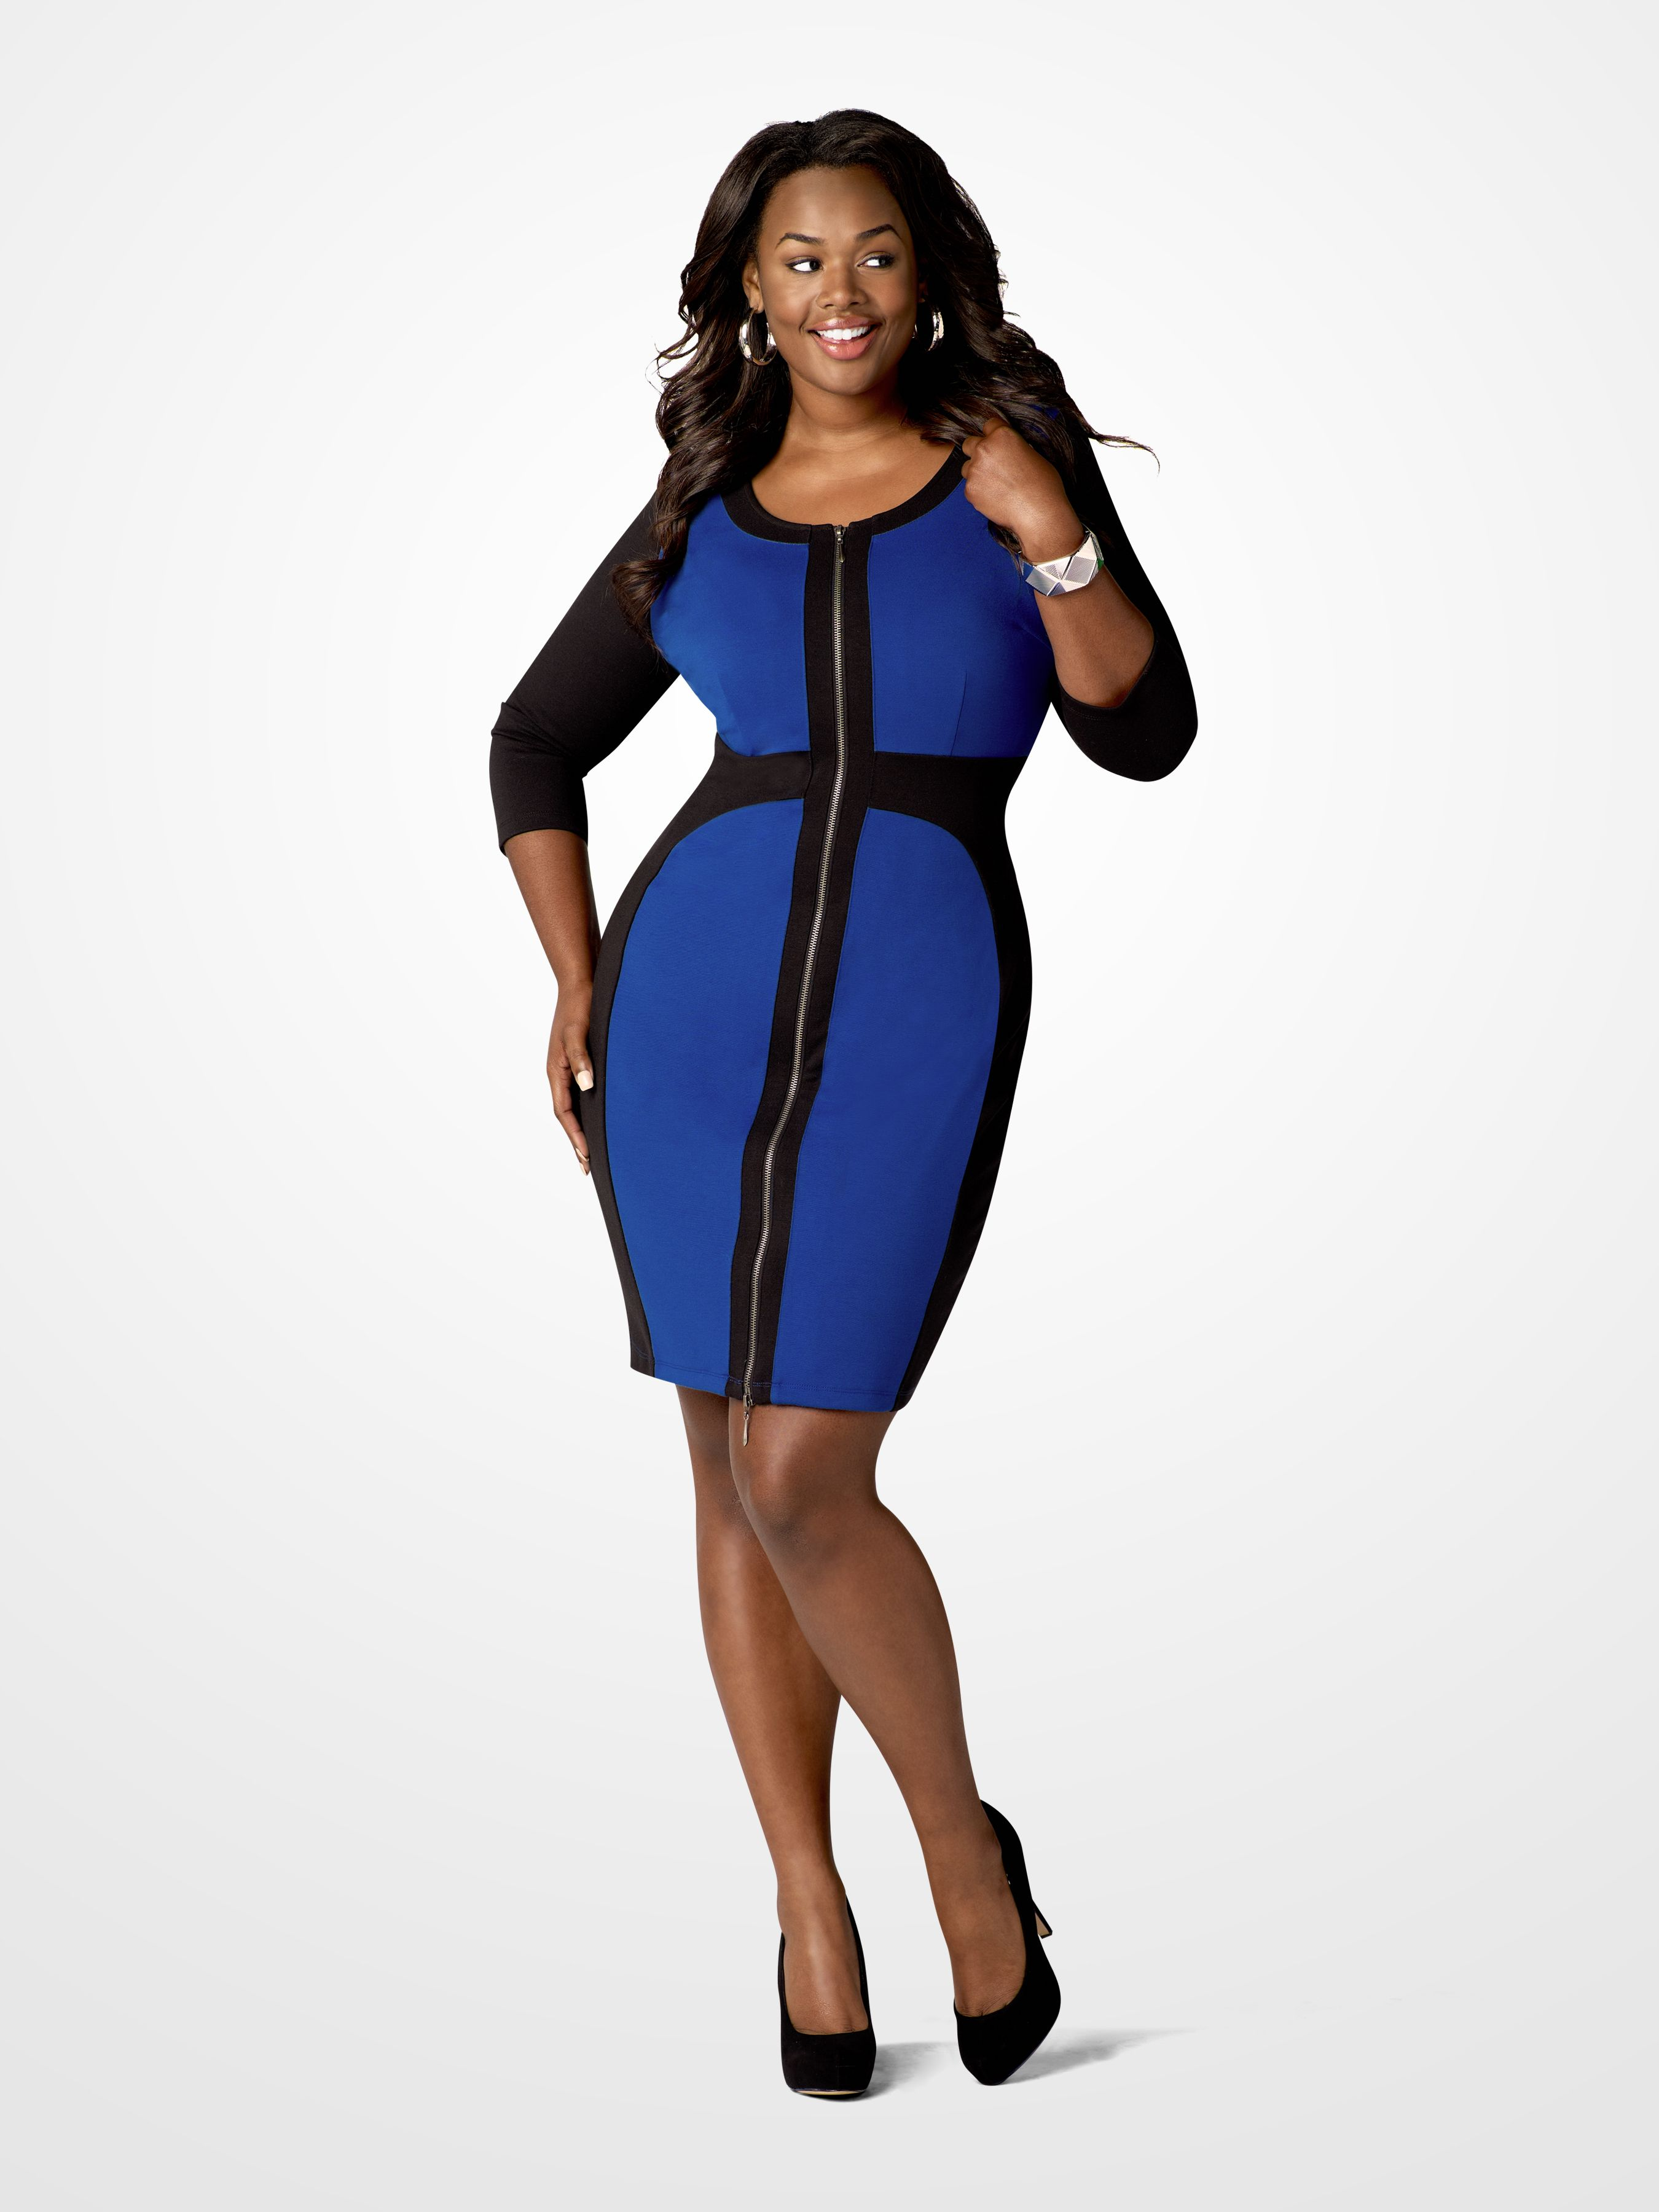 09809e9dc6 Wear this royal blue and black colorblock zipper dress on a night out with  the beau